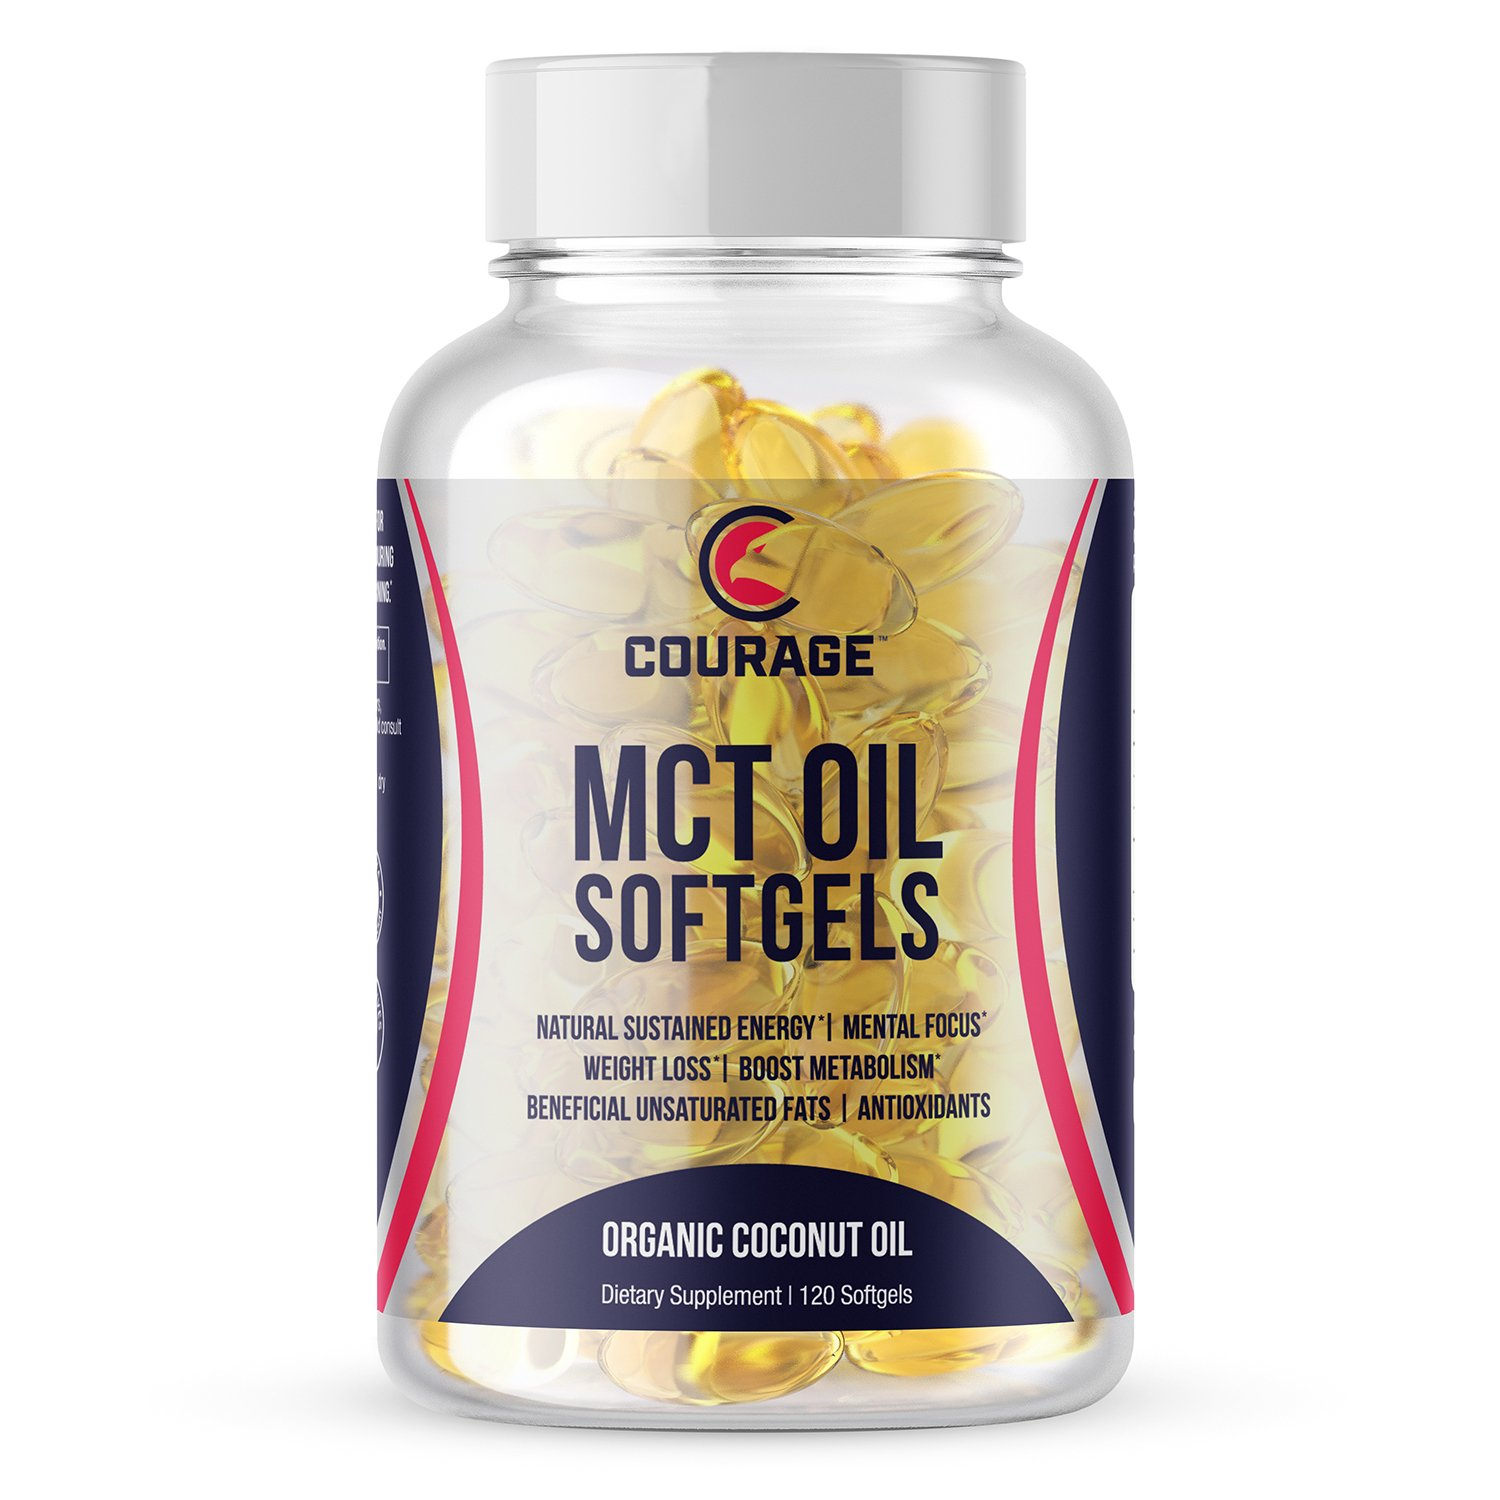 MCT Oil Capsules - Softgels - Keto Diet Premium C8 C10 MCT Coconut Oil For Exogenous Ketones - Convenient Pills For Quick Energy, Mental Focus, Weight Loss And Metabolism Boost - 1000mg 120 Count.